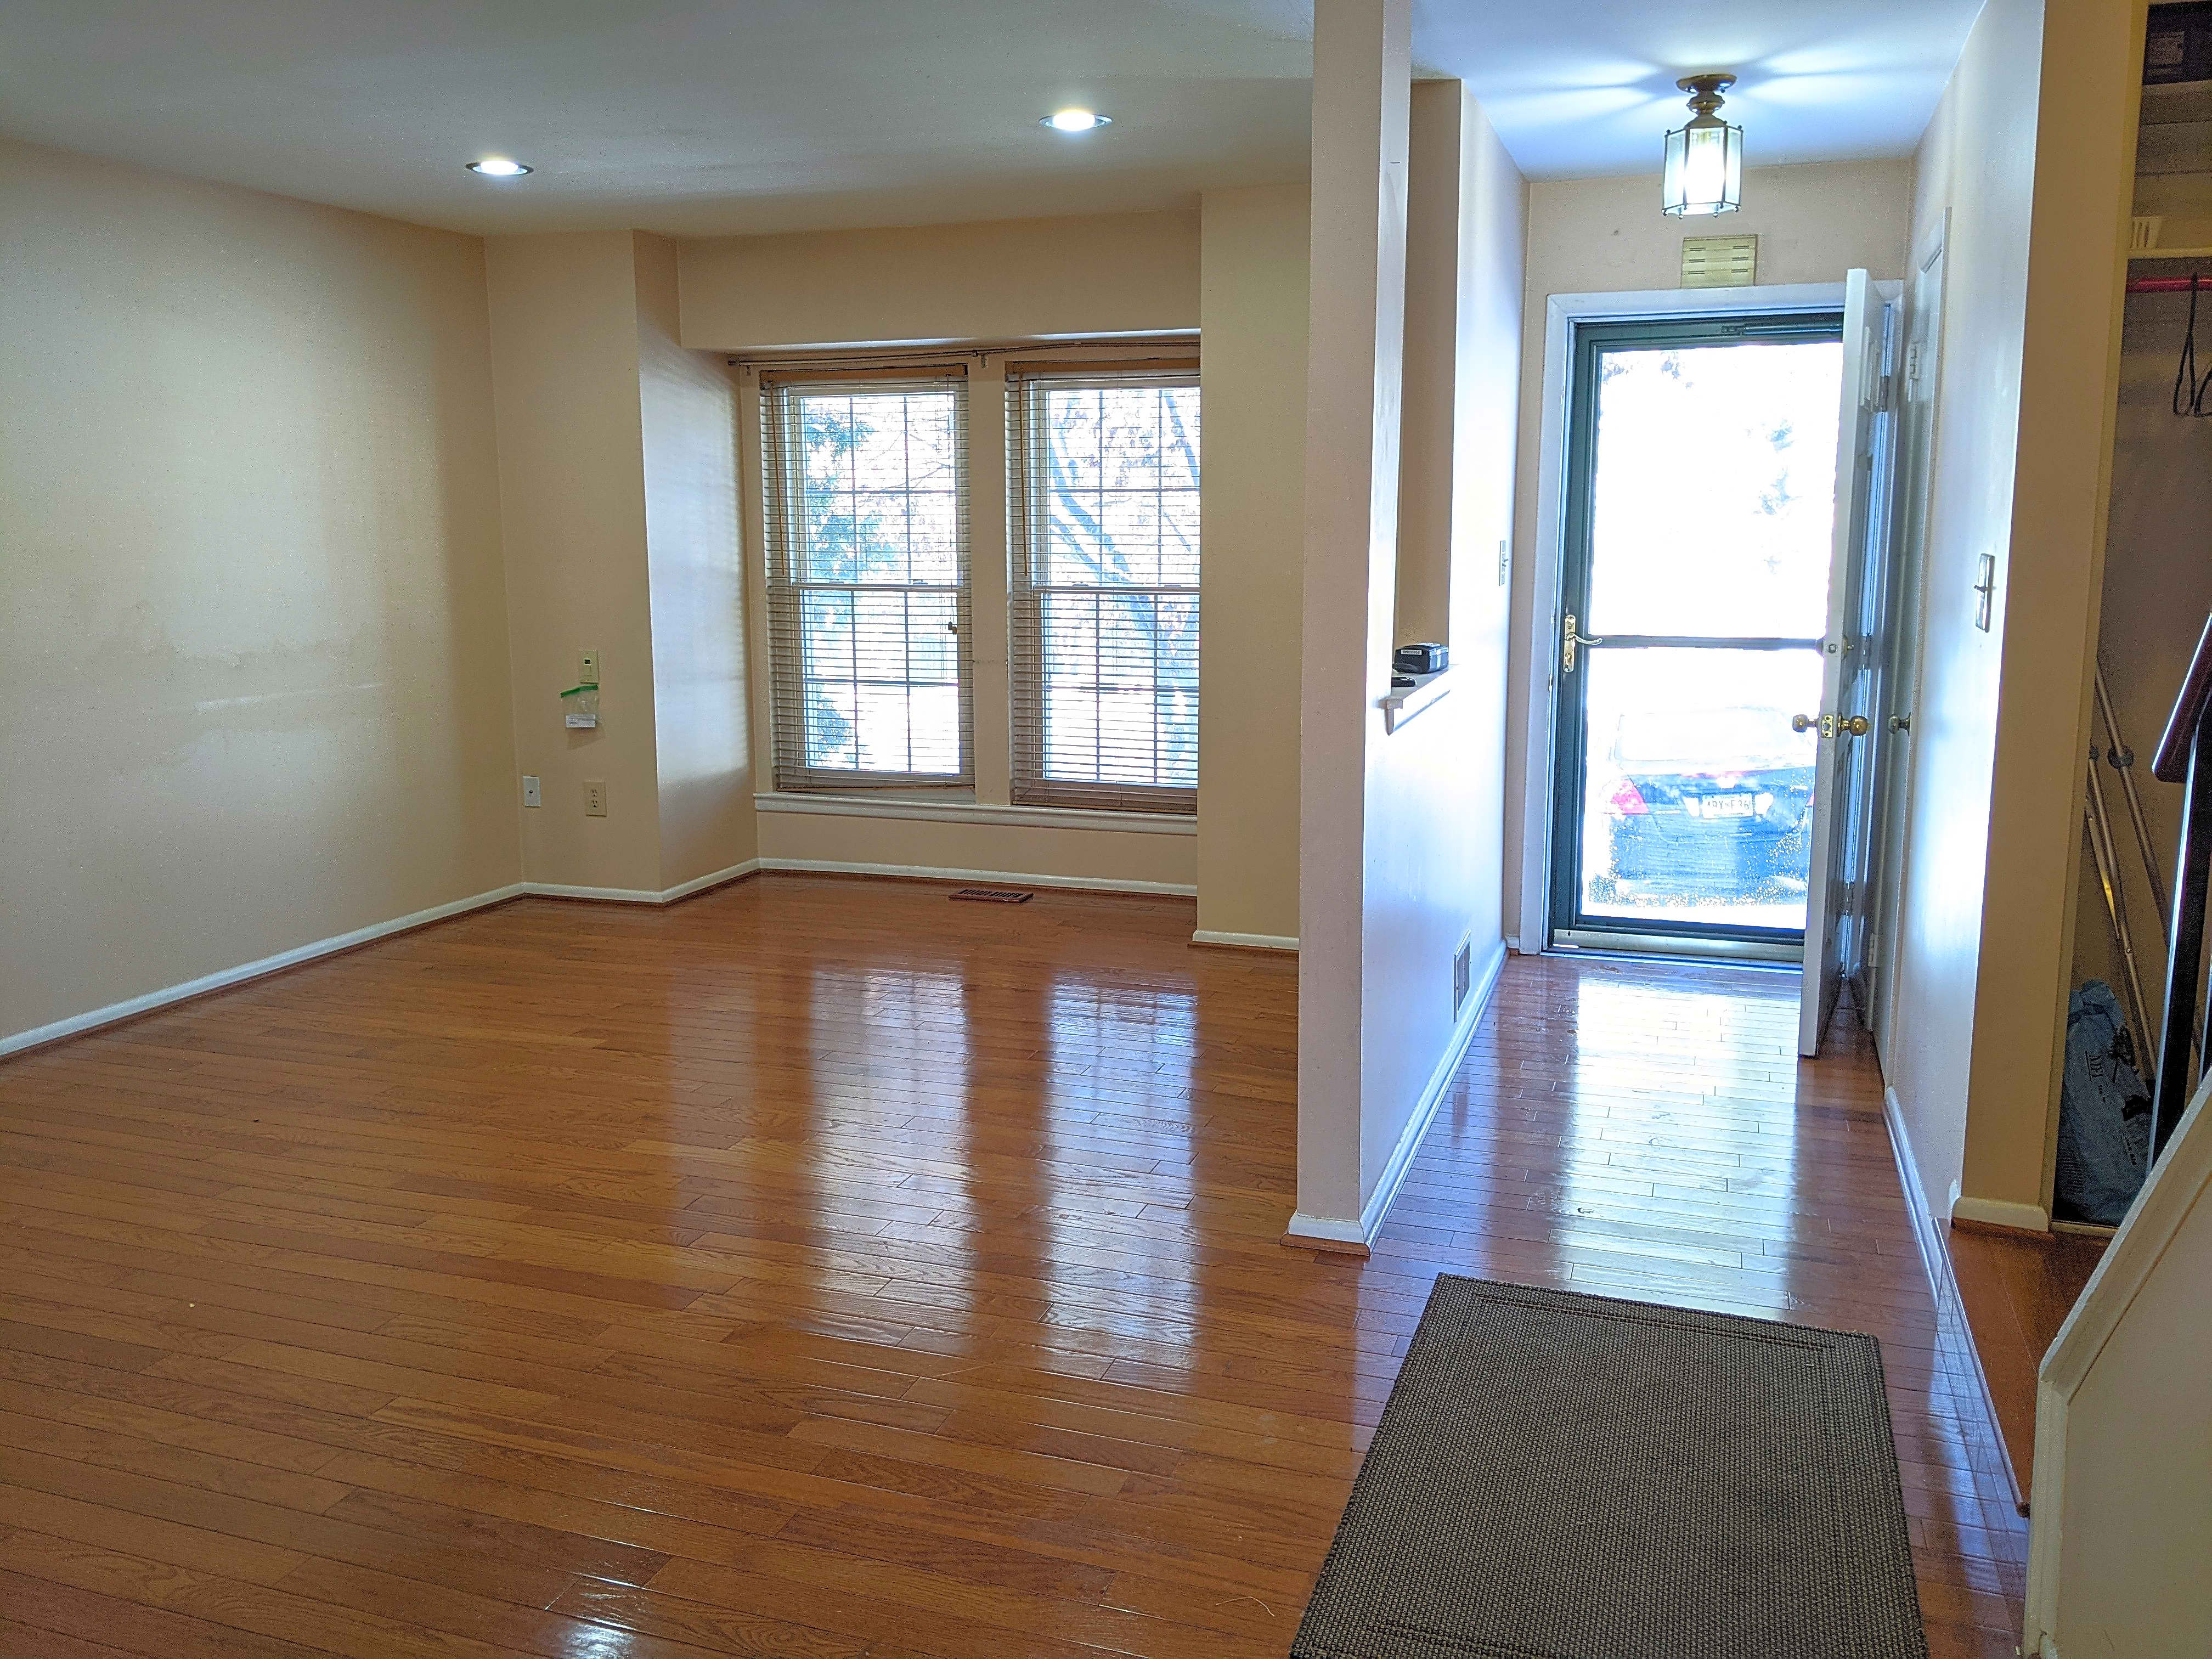 House for Rent in Gaithersburg